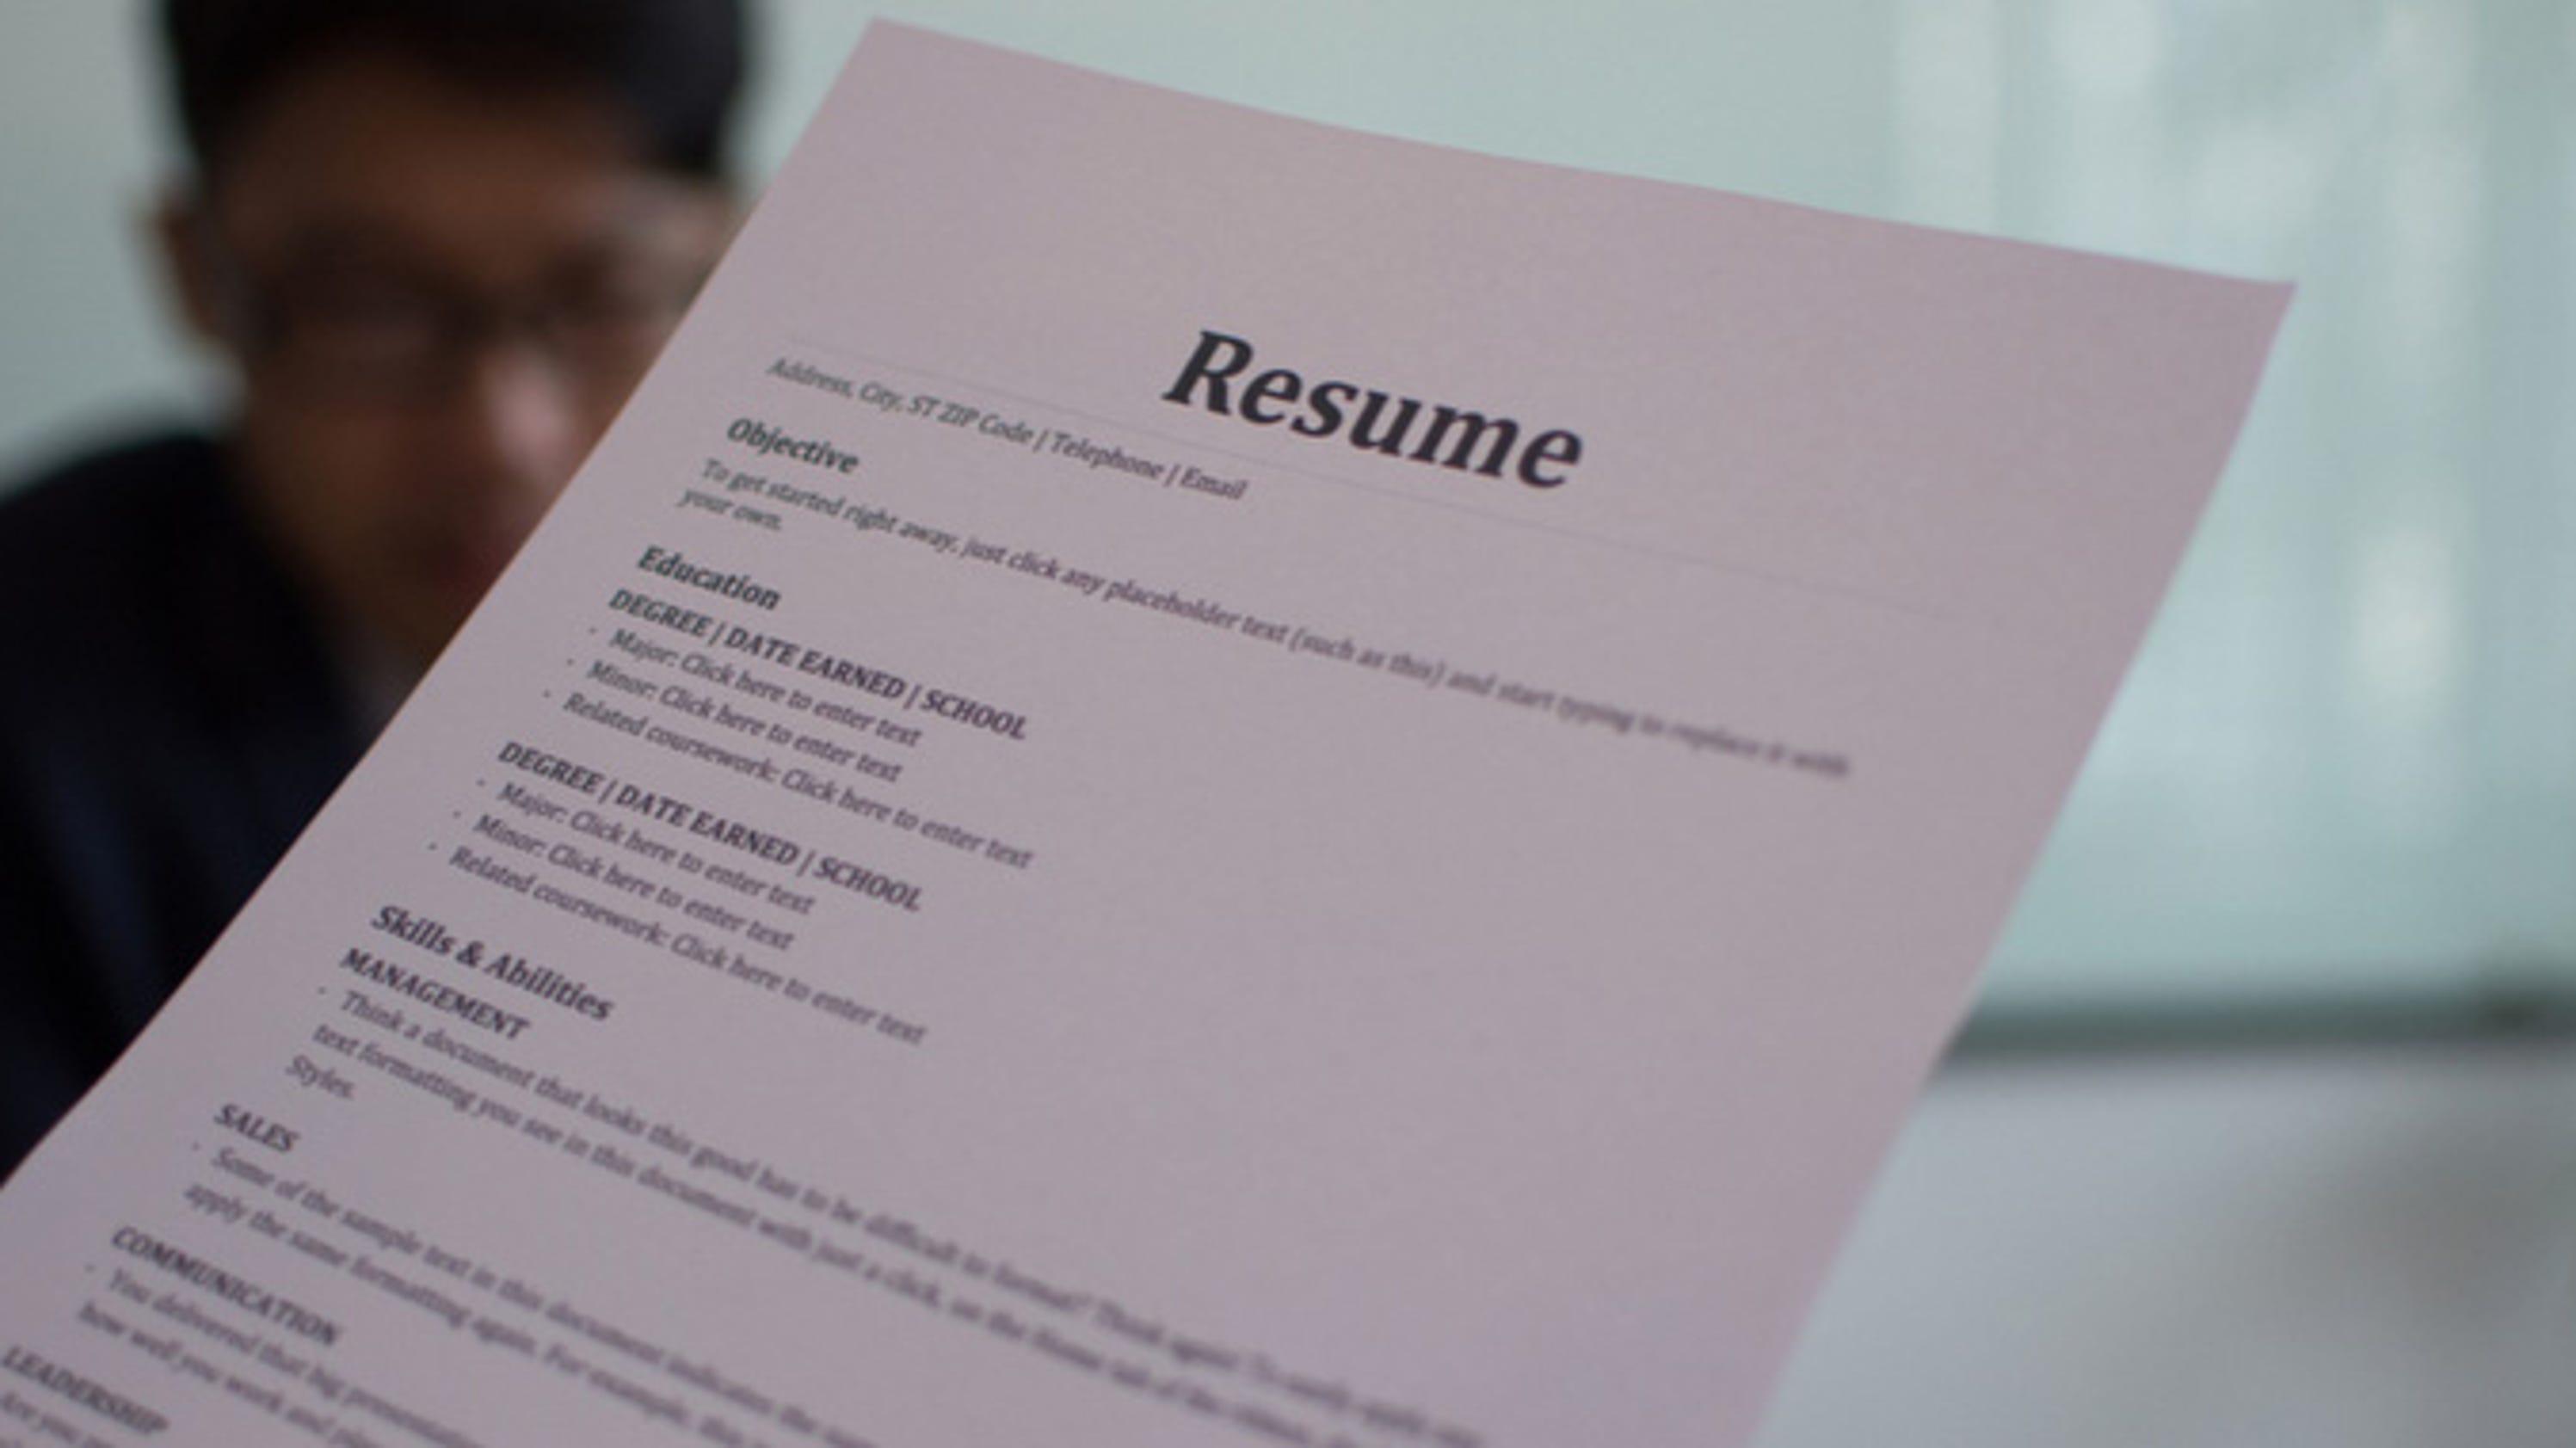 job search  what is the difference between a resume and a curriculum vitae